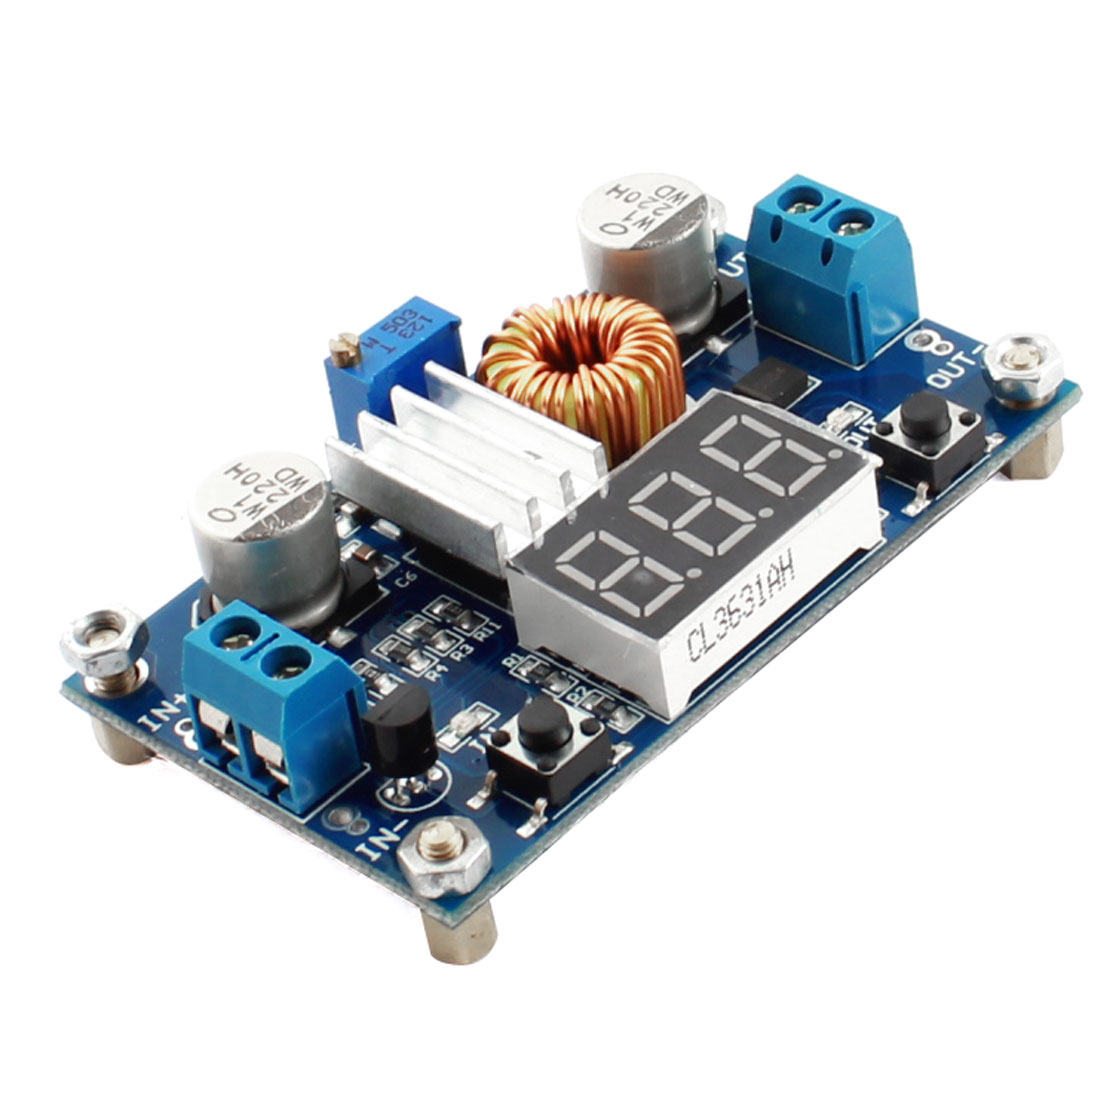 DC/DC 4-38V to 1.25-36V Adjustable Voltage Step-Down Module Board w Voltmeter